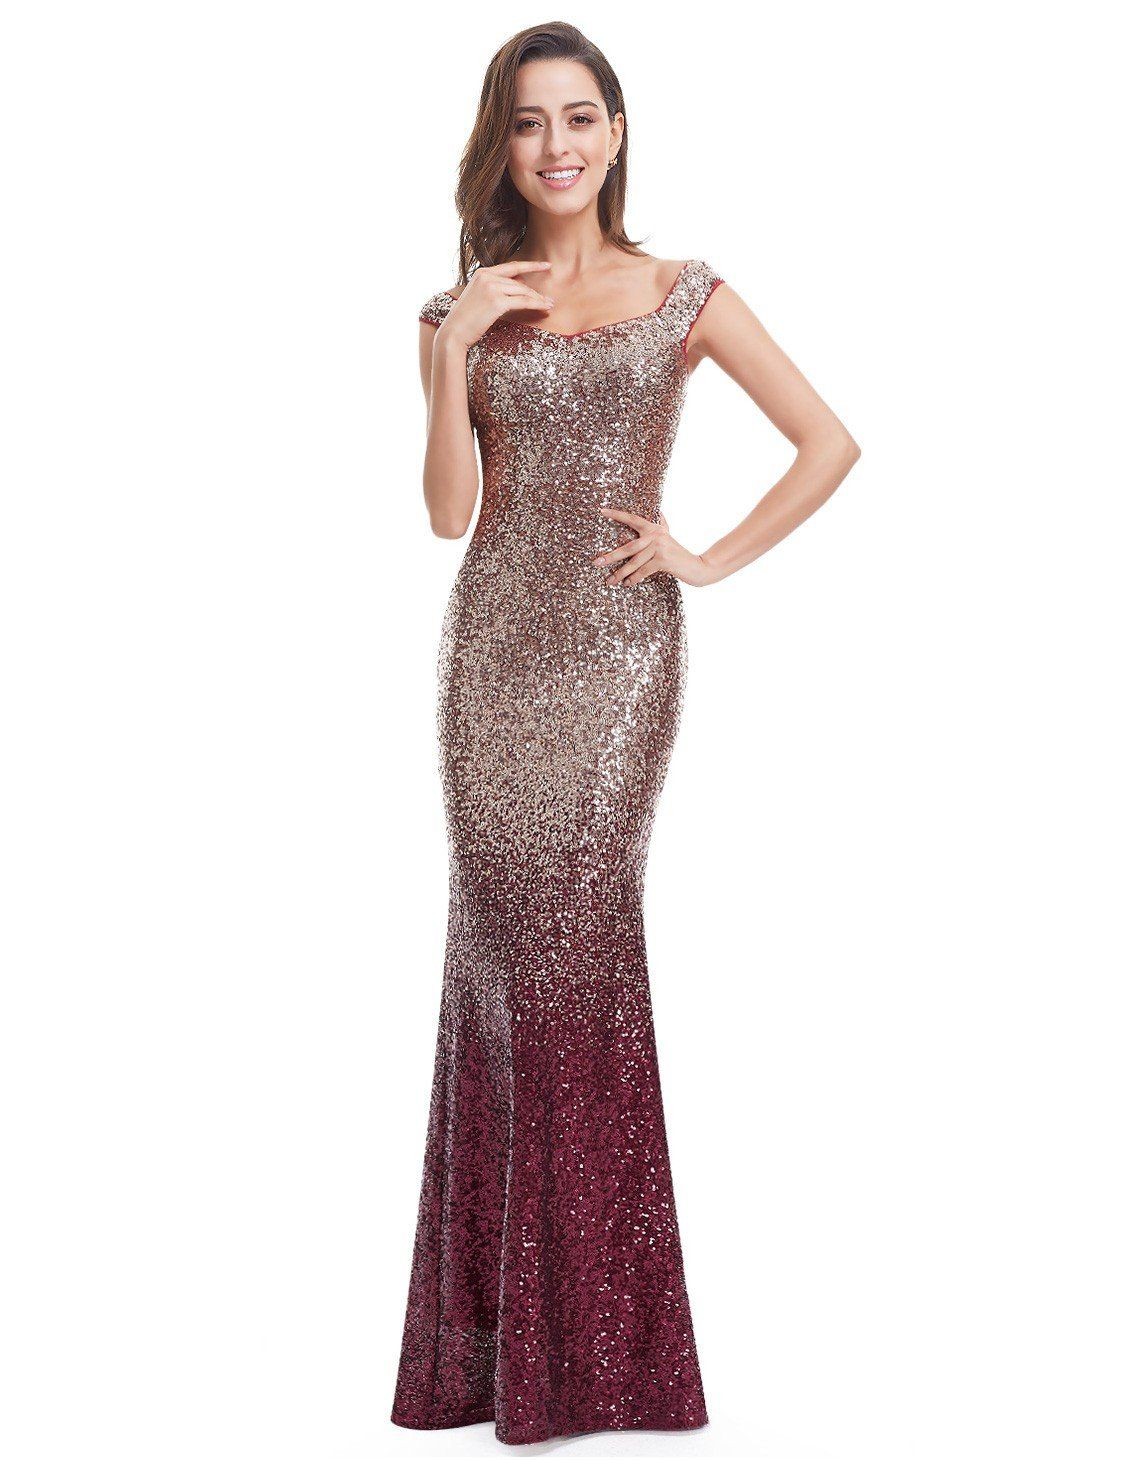 2a4bcacf00 Shimmer and shine at all your special events in these gorgeous sequin  dresses. From fun and flirty cocktail dresses to stunning floor length  evening ...